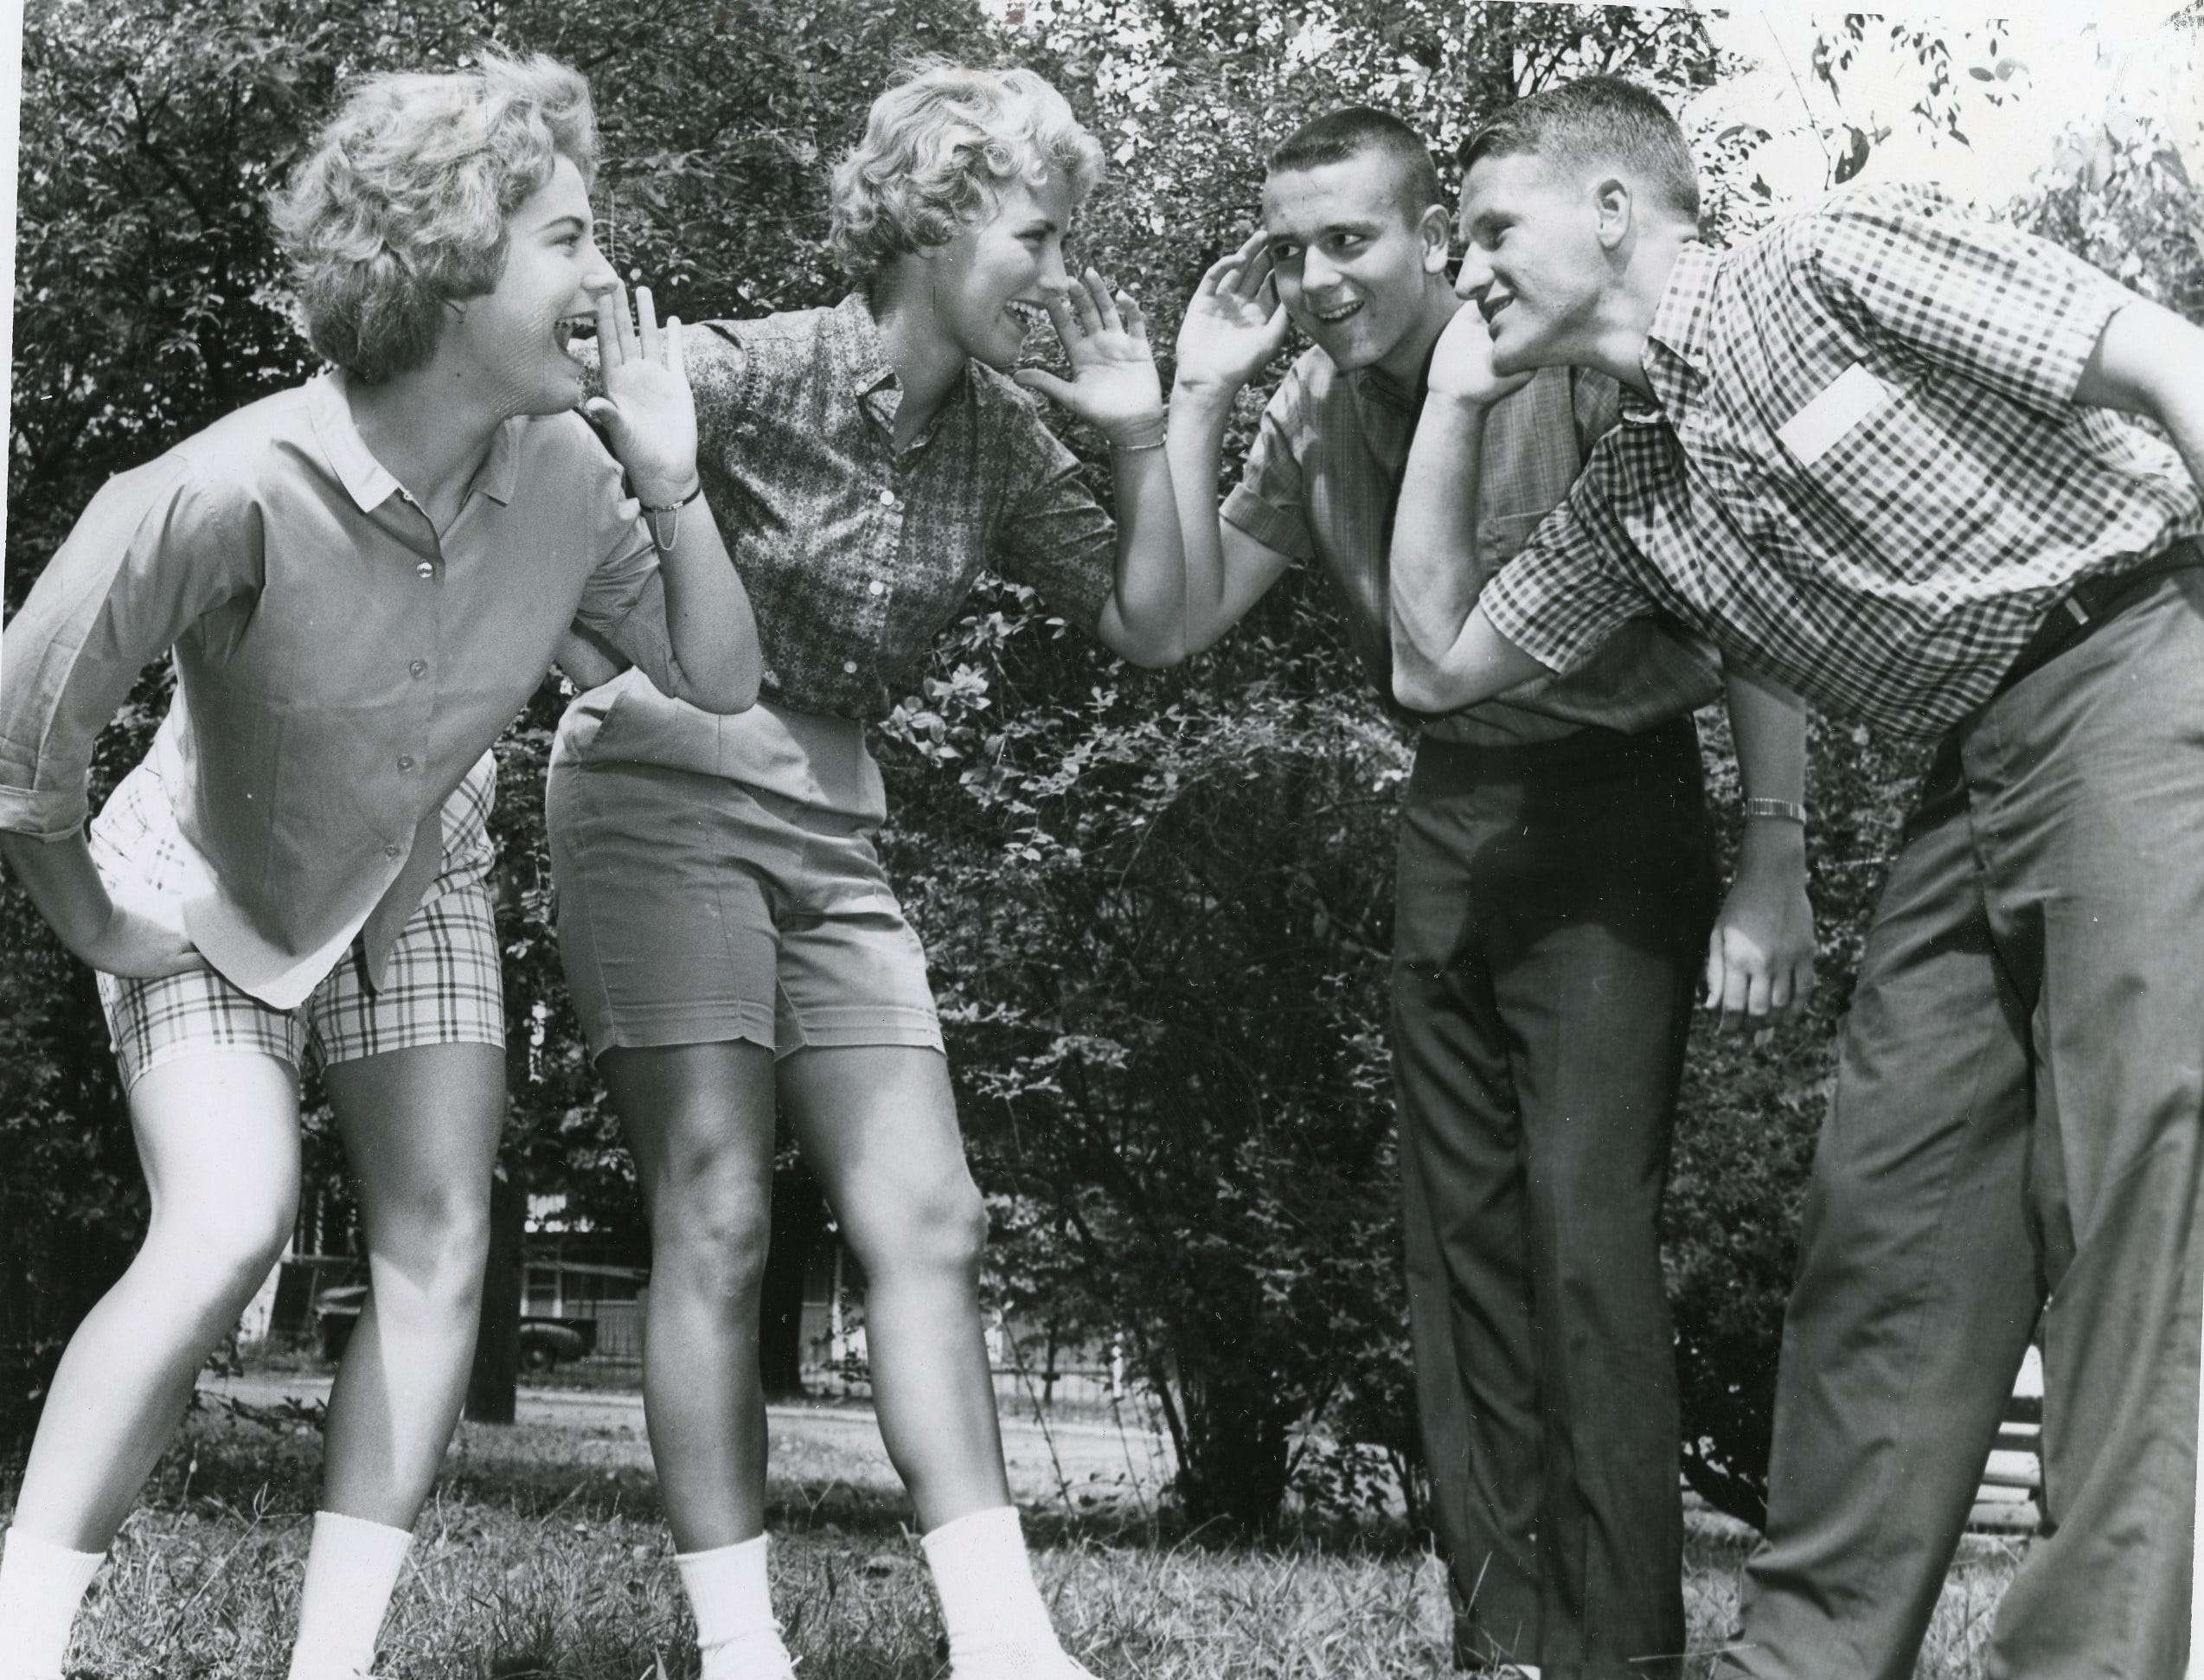 """Let's Get a Little Bit Louder"" with these 1961 UT cheerleaders, Janet Stanford, Wallene Threadgill, L.D. Word and Jack Webb."